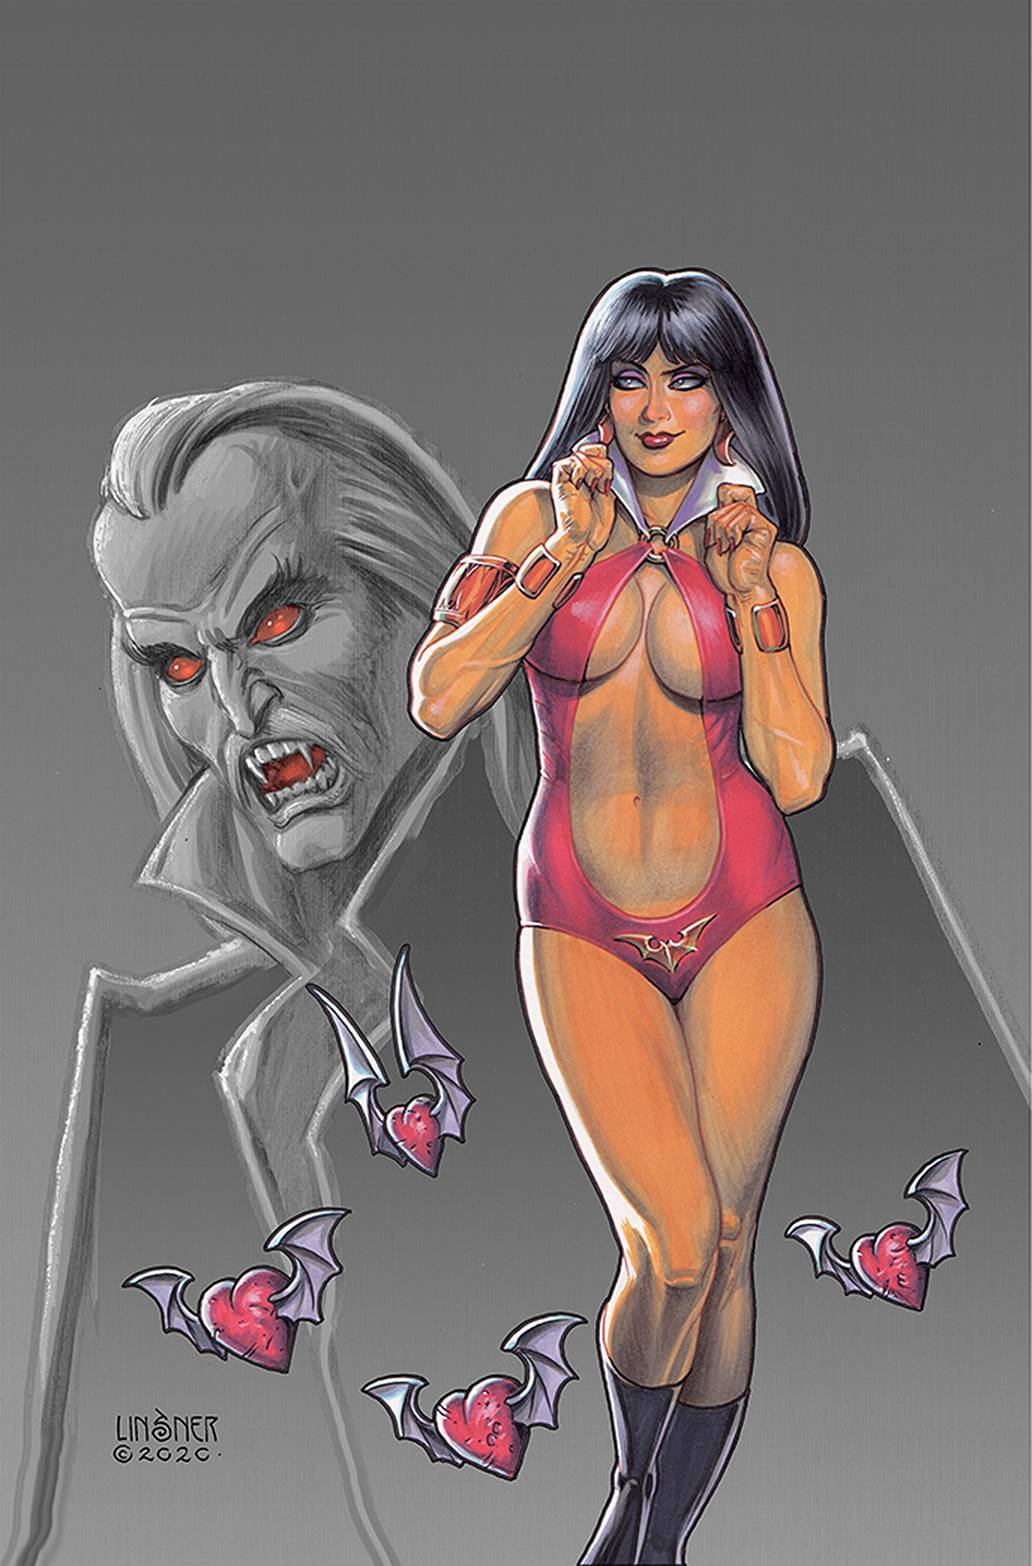 VAMPIRELLA VALENTINES SP ONE SHOT LINSNER LTD VIRGIN CVR